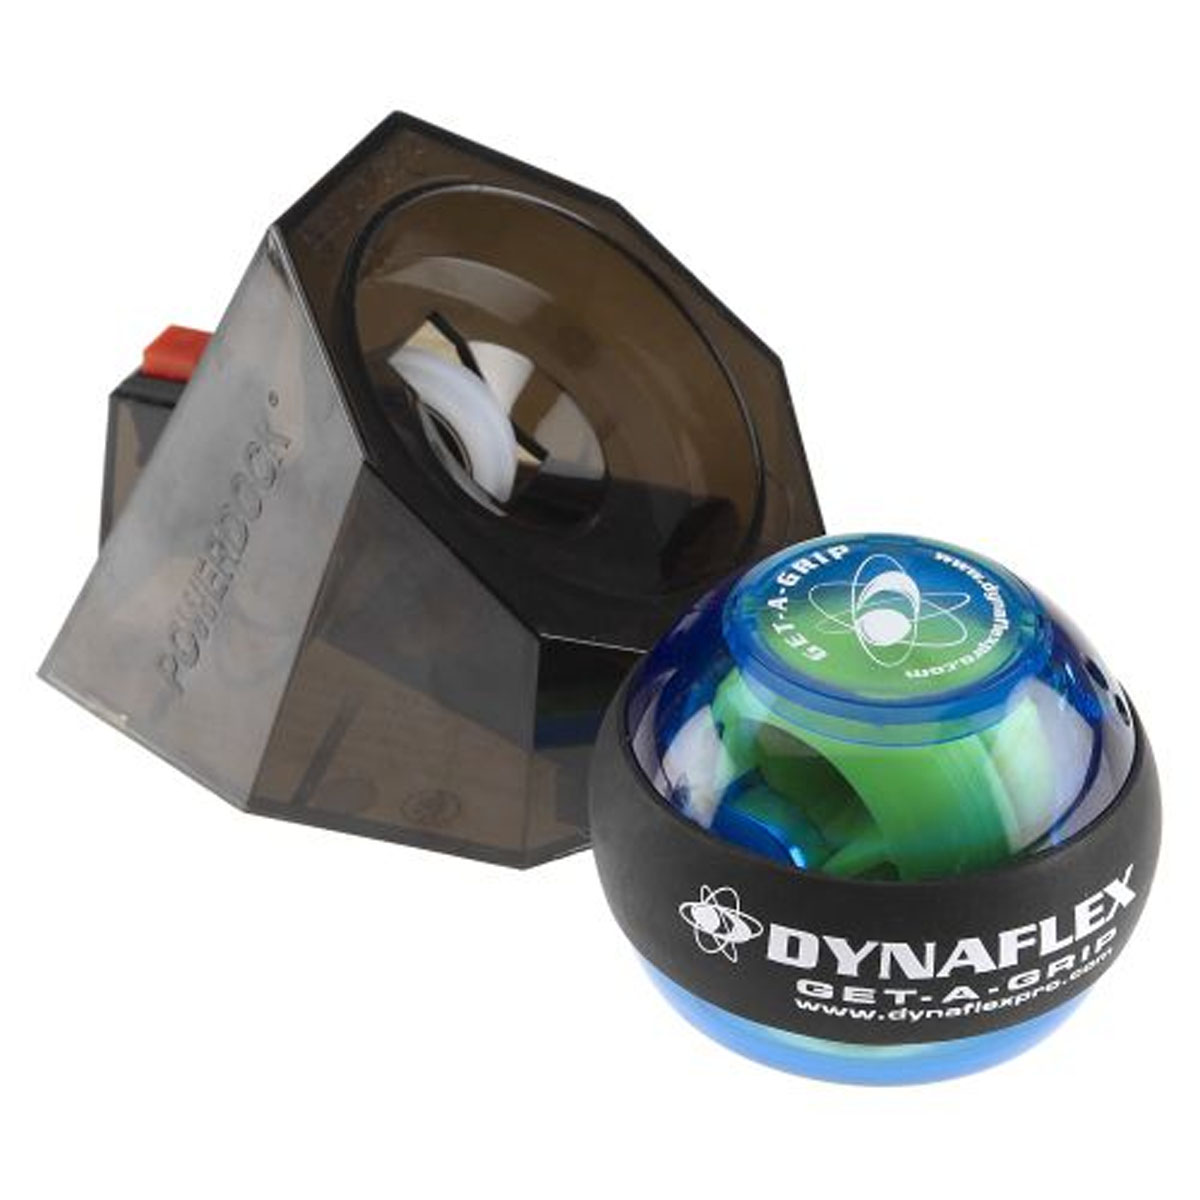 DFX Dynaflex Pro Gyro With Dock Forearm and Wrist Strengthener - DFX-10010